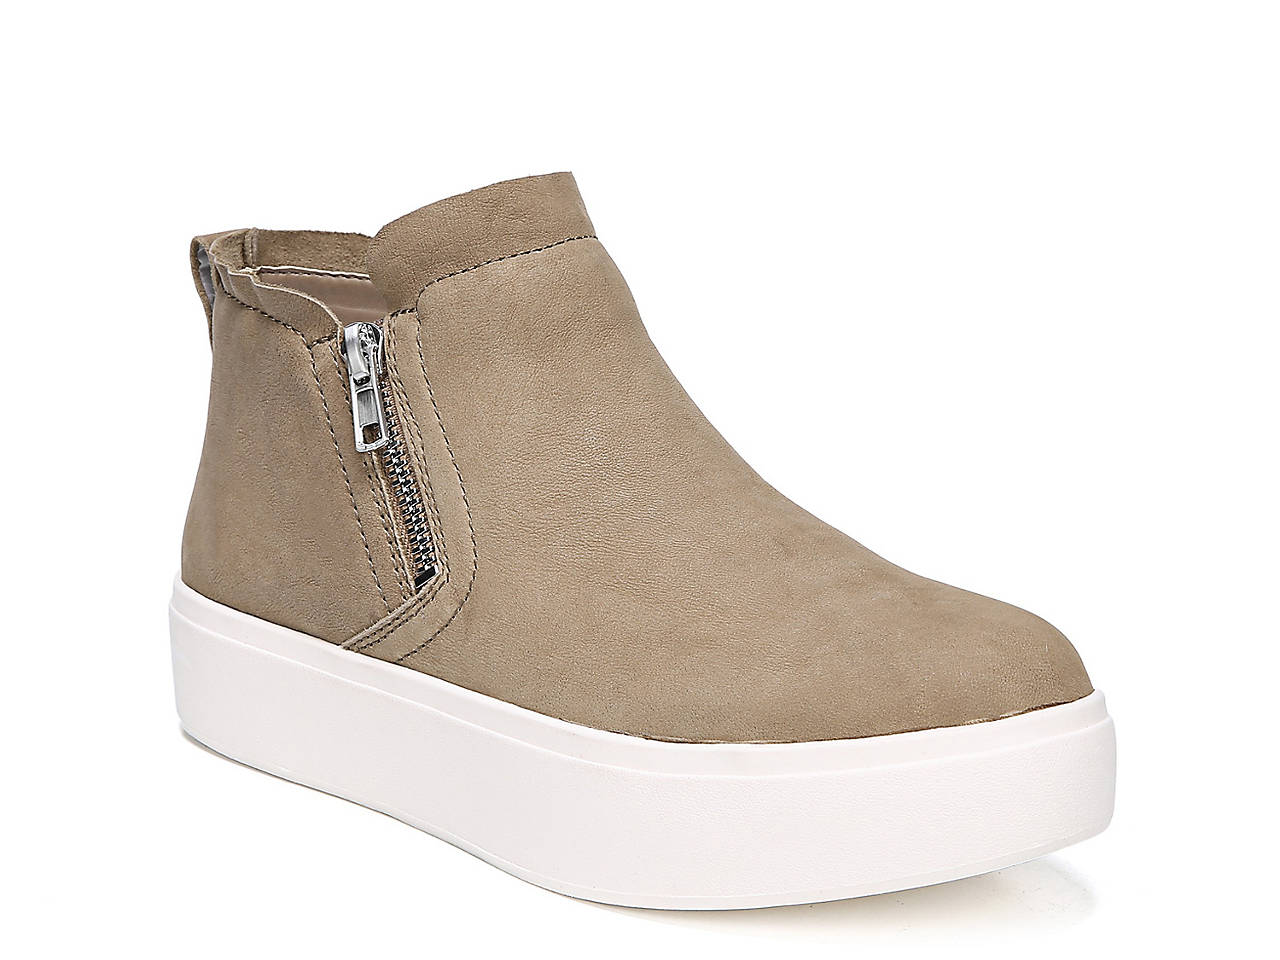 73299124a99 Dr. Scholl s Abbot Platform High-Top Sneaker Women s Shoes